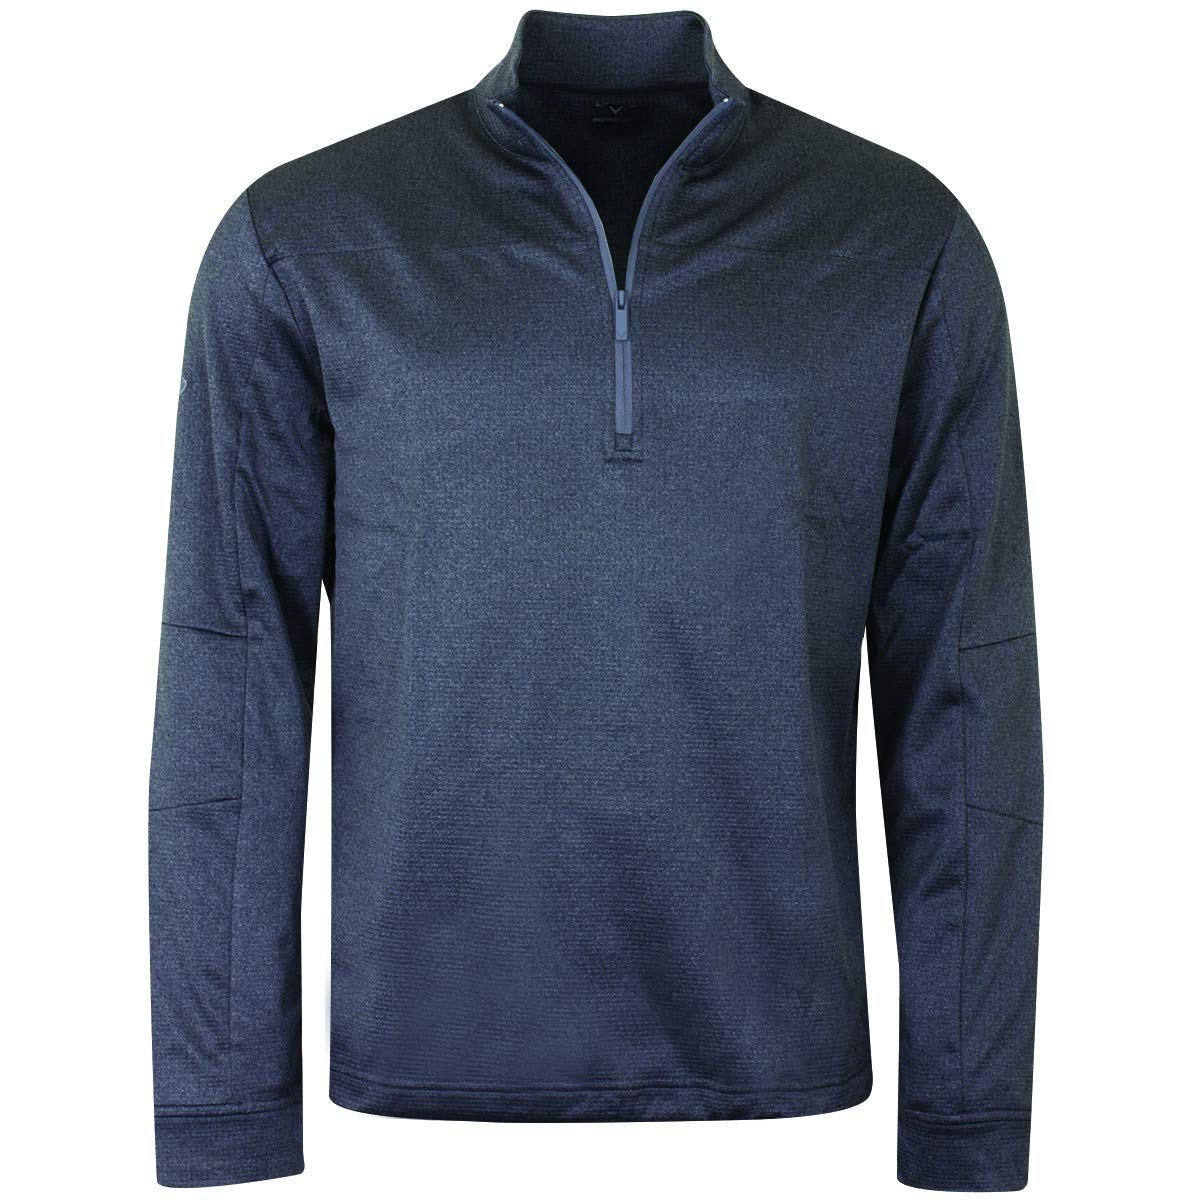 Callaway Golf 2019 Mens Pieced Waffle 1/4 Zip Thermal Pullover Sweater Castlerock Heather Large by Callaway